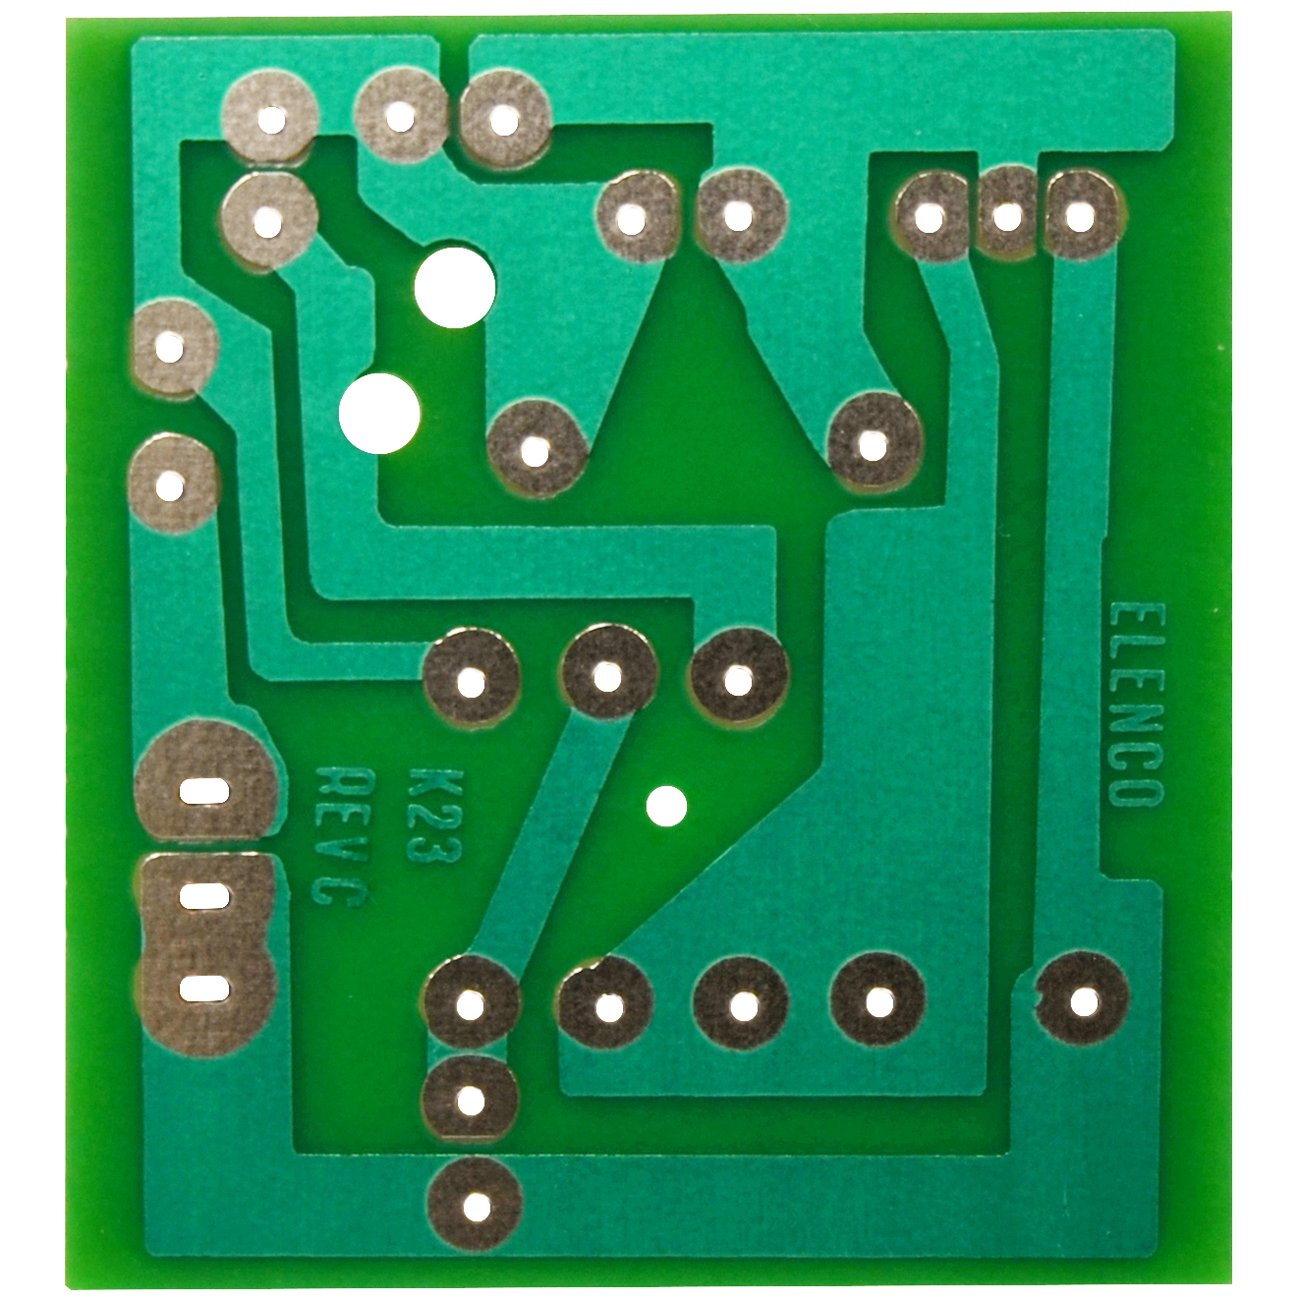 Deluxe Learn To Solder Kit Sk175 Circuit Boards Components Test